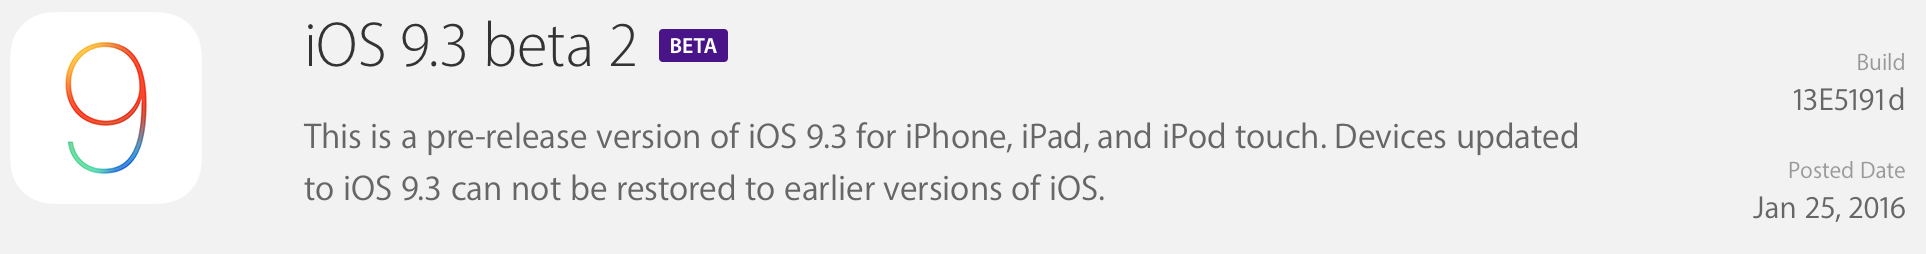 iOS 9 Beta Release Notes-bildschirmfoto-2016-01-25-um-23.45.54.png